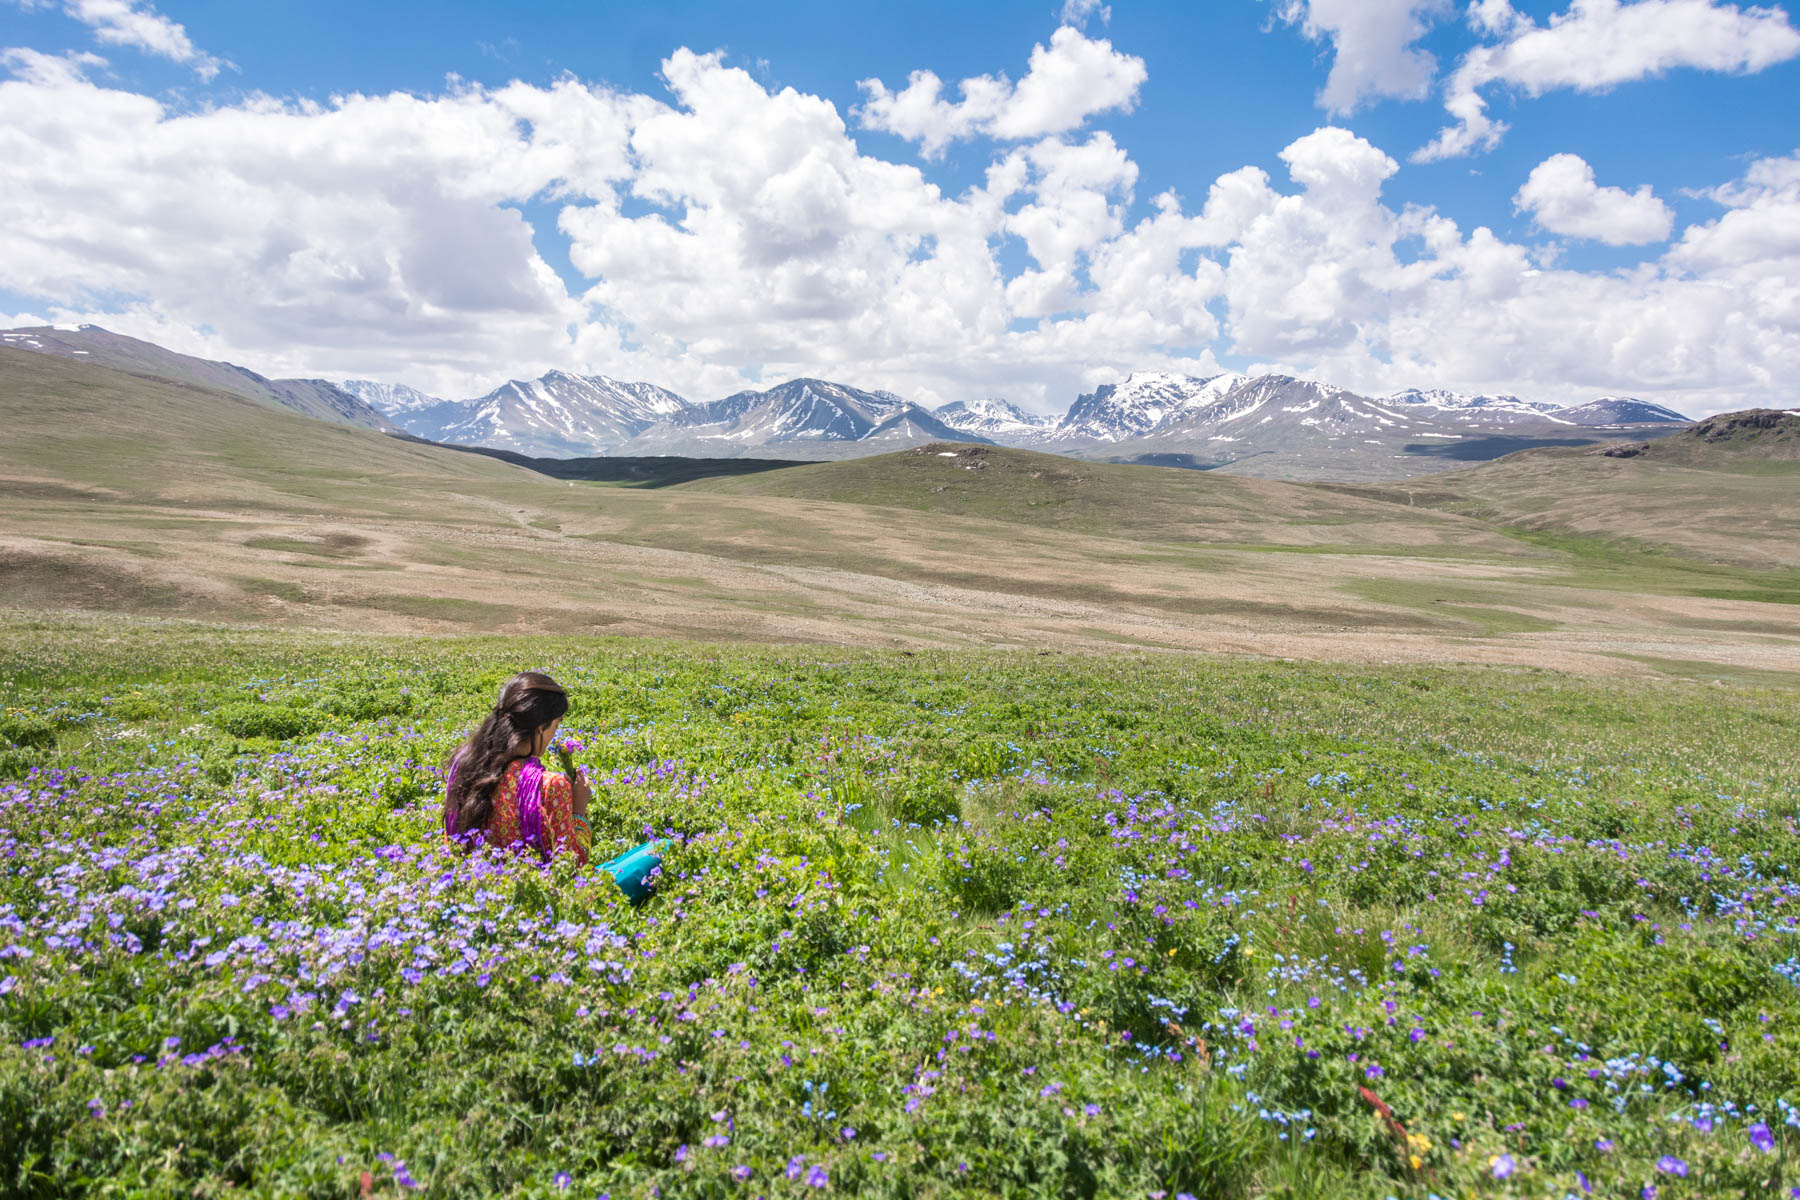 Is it safe for women to travel in Pakistan? - Female travel in Deosai, Pakistan - Lost With Purpose